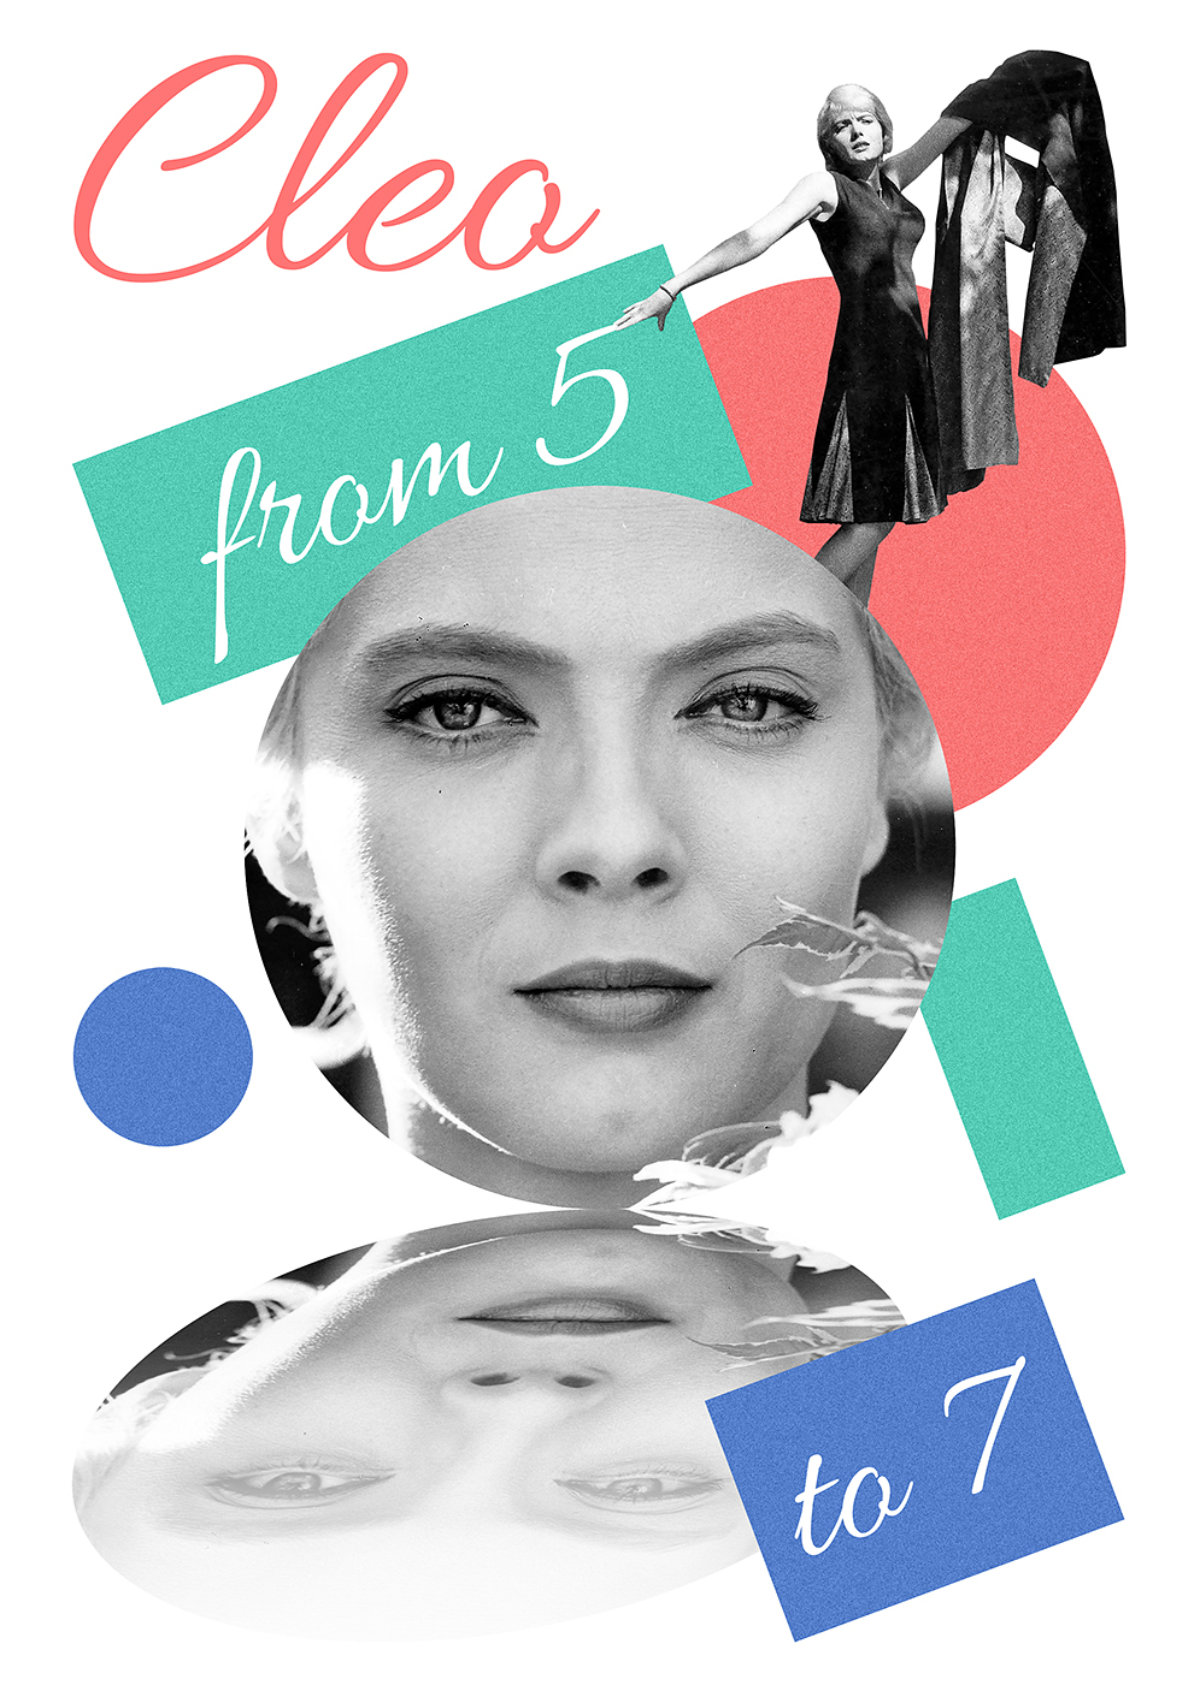 'Cleo From 5 to 7 (Cleo de 5 a 7)' movie poster